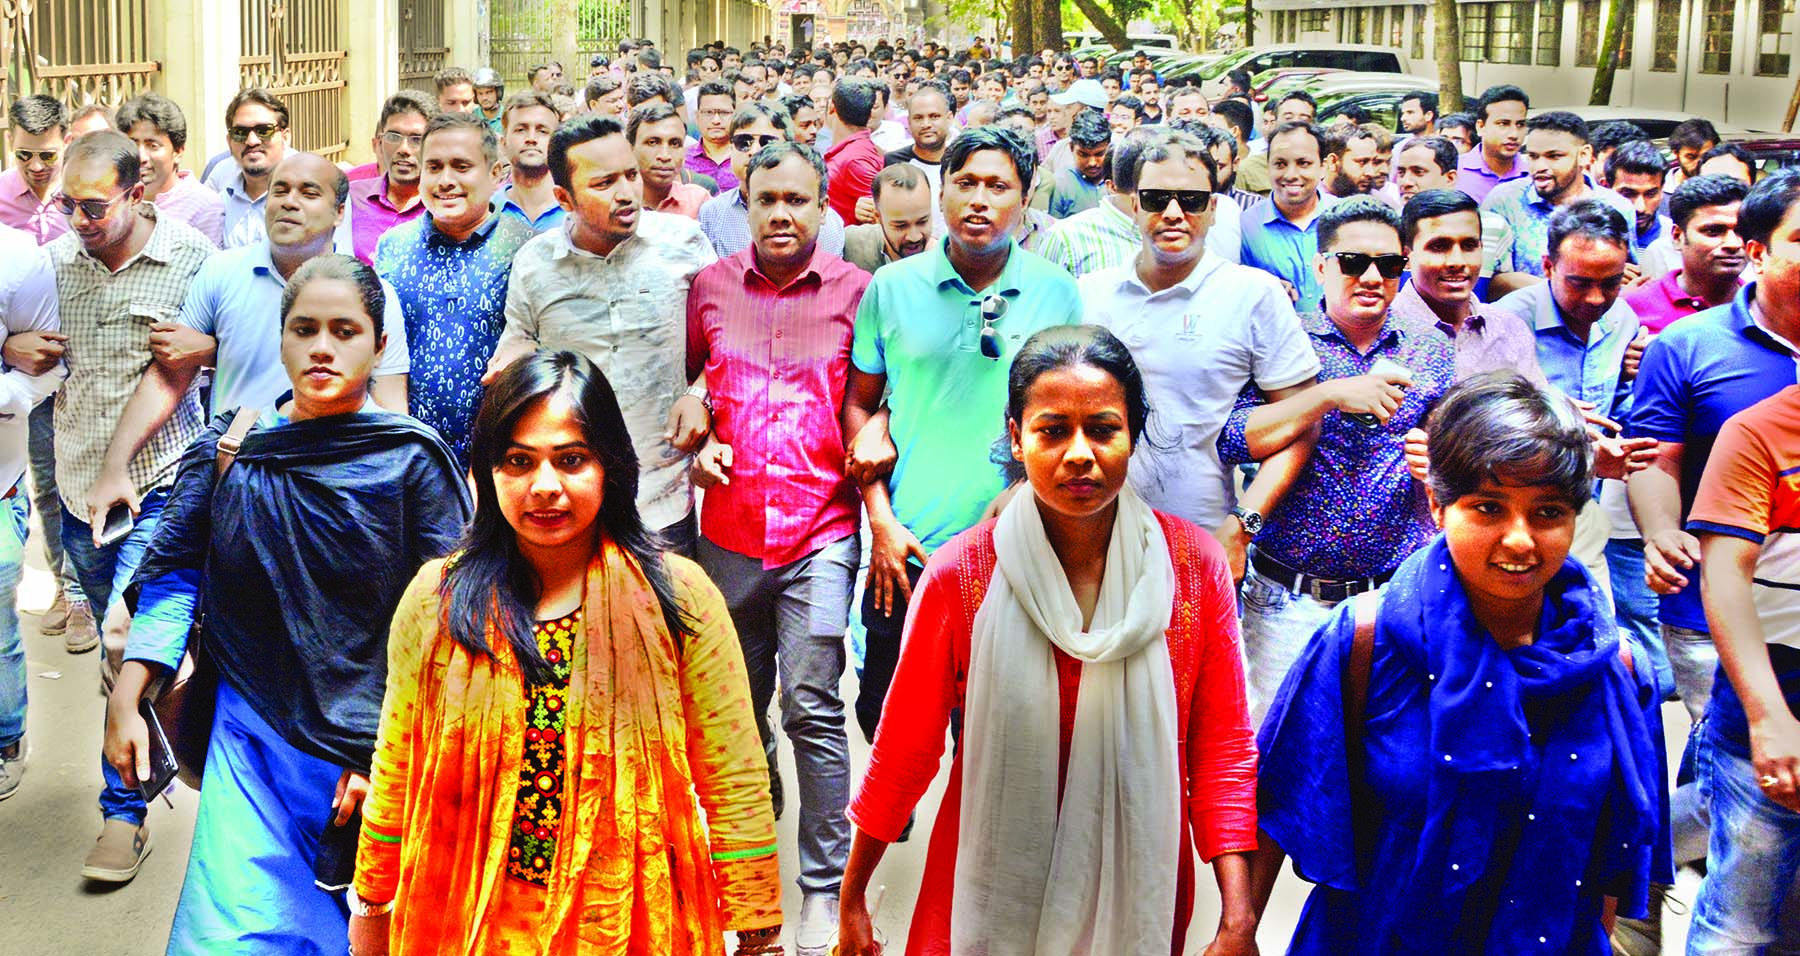 Jatiyatabadi Chhatra Dal brought out a silent procession on Dhaka University campus on Thursday demanding trial of killers of Abrar Fahad and release of BNP Chief Begum Khaleda Zia.